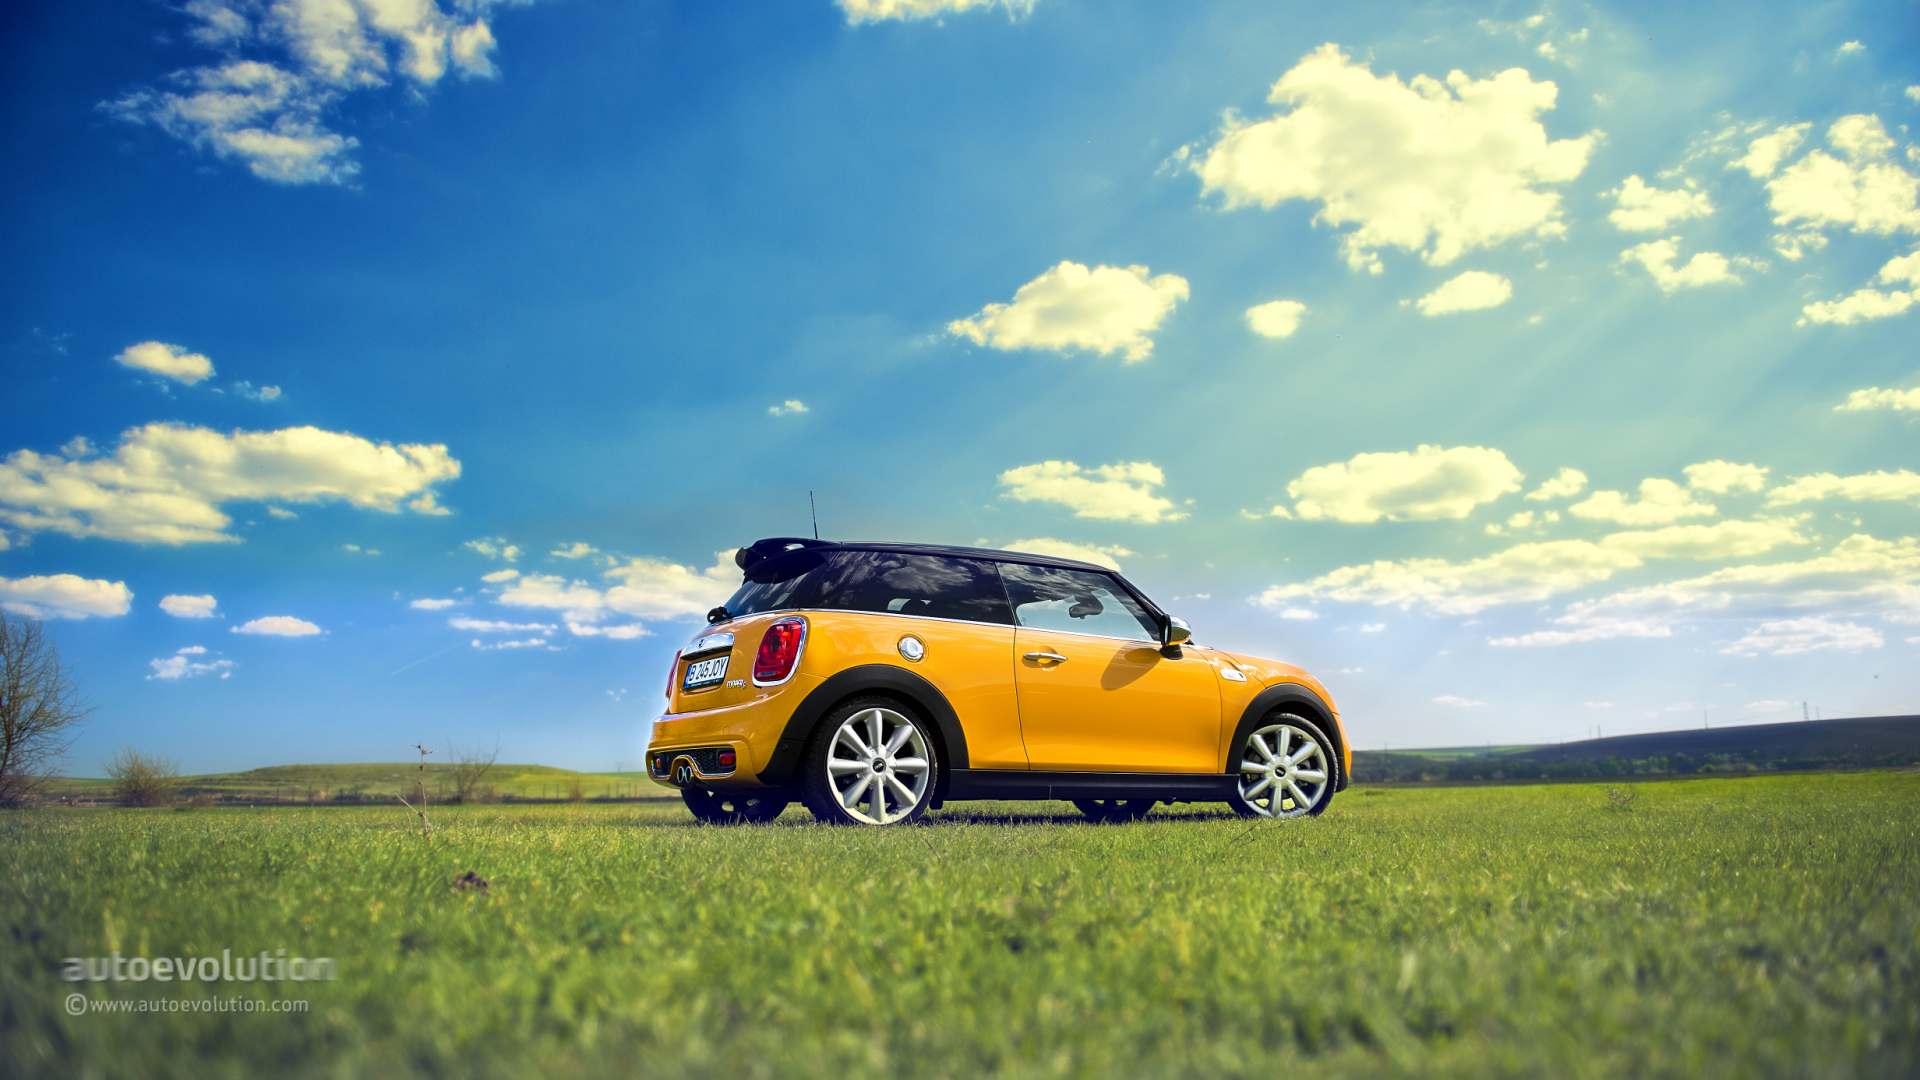 2014 mini cooper s hd wallpapers - autoevolution